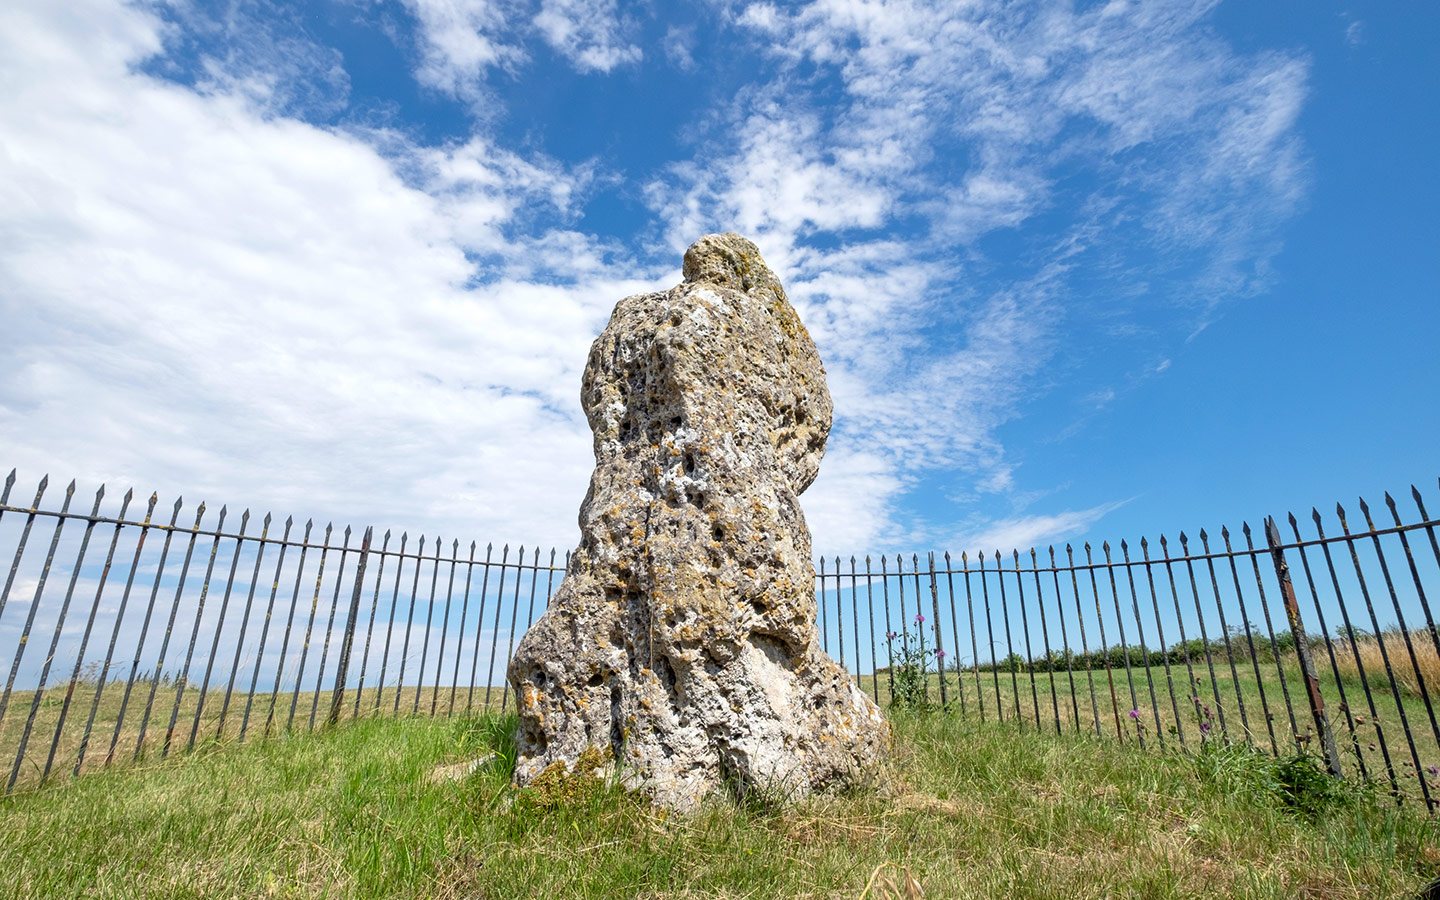 The King's Stone at the Rollright Stones